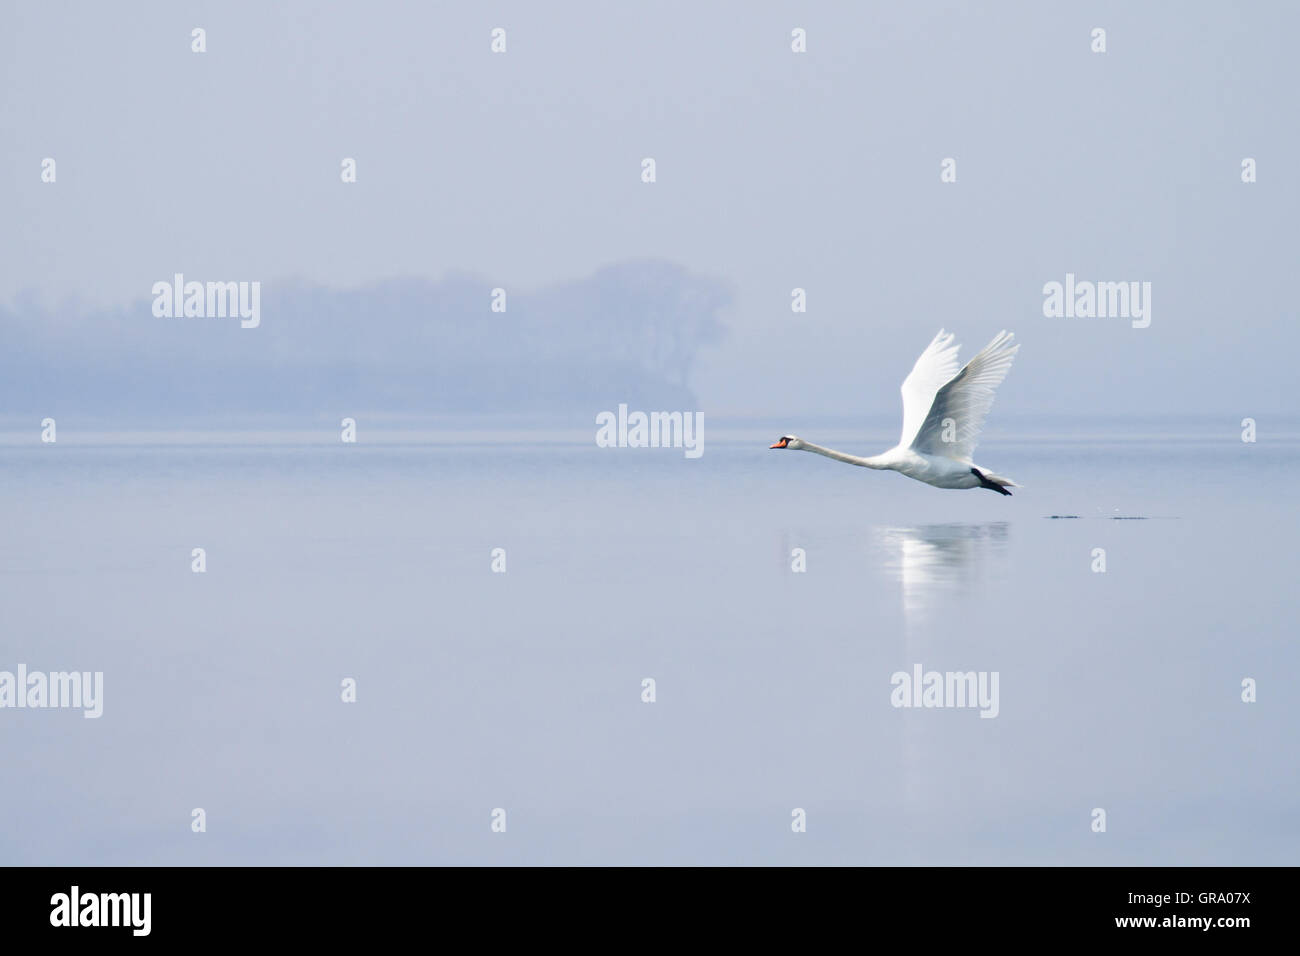 Swan Is Flying Over Flat Water - Stock Image